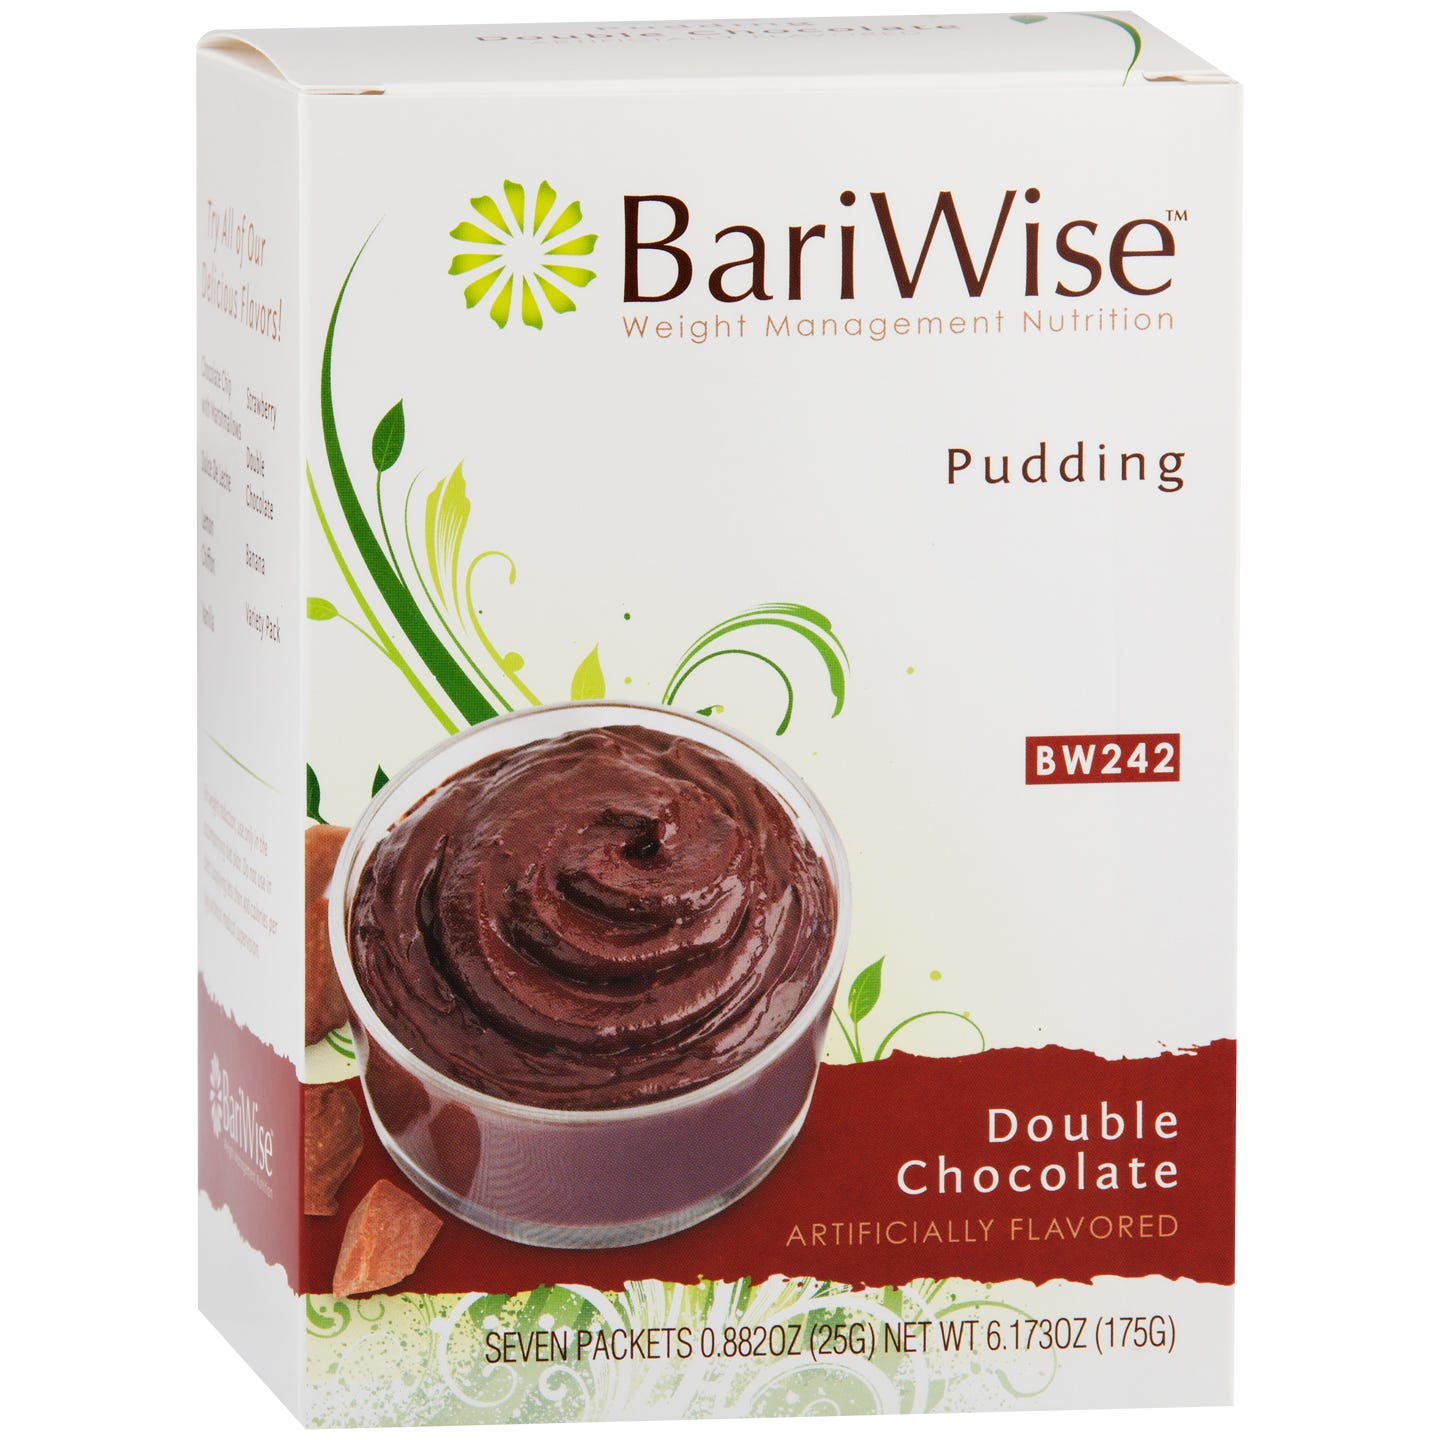 Diet Protein Pudding Double Chocolate (7 Ct) - BariWise